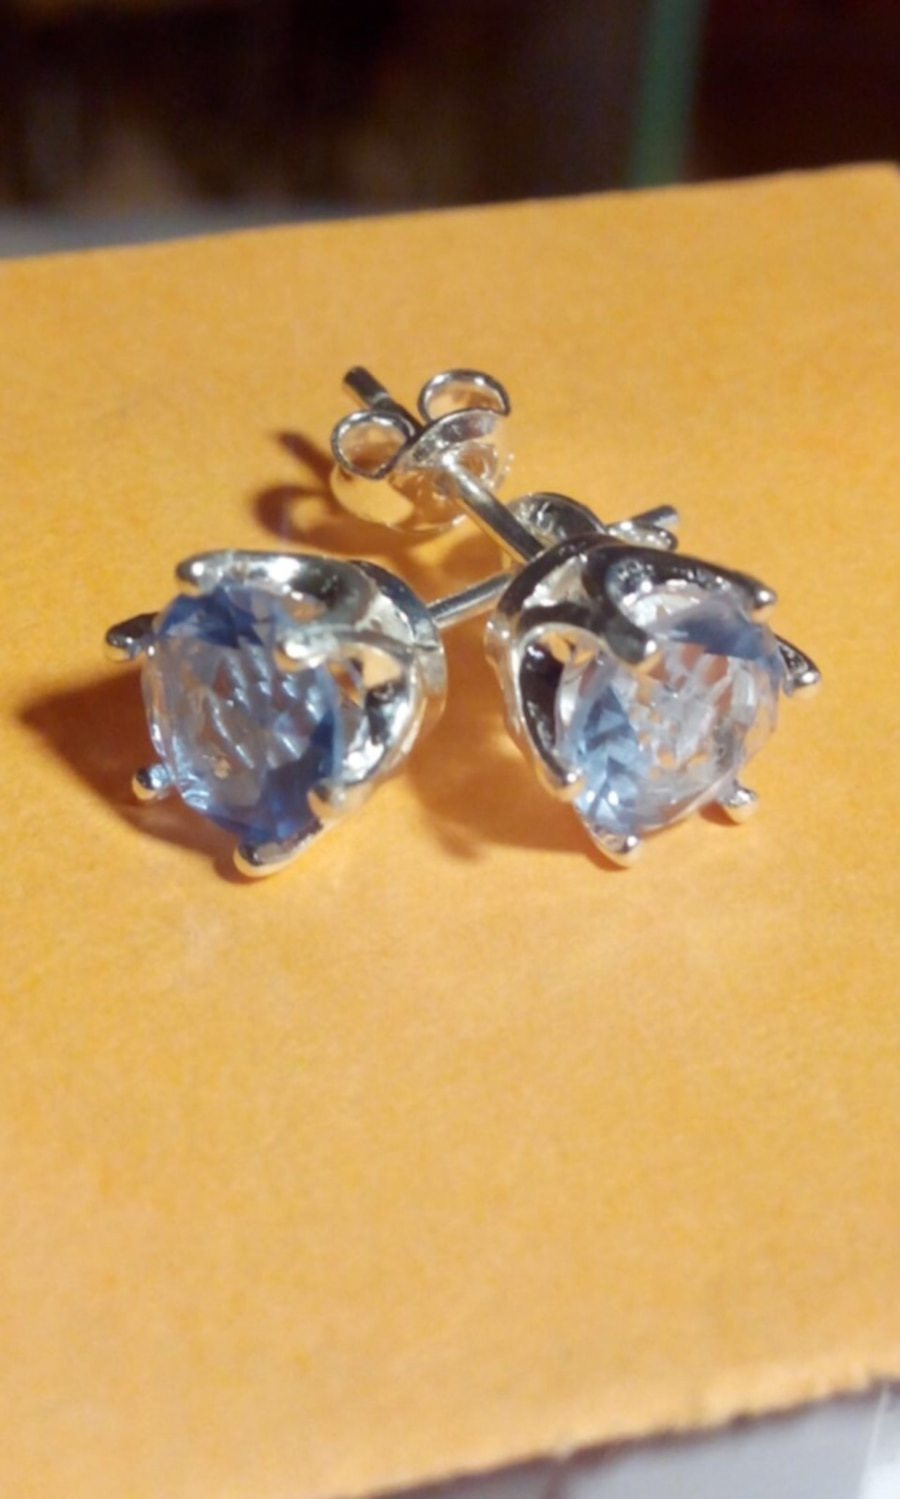 Boucles d'oreilles Fancy Cut - 30 €